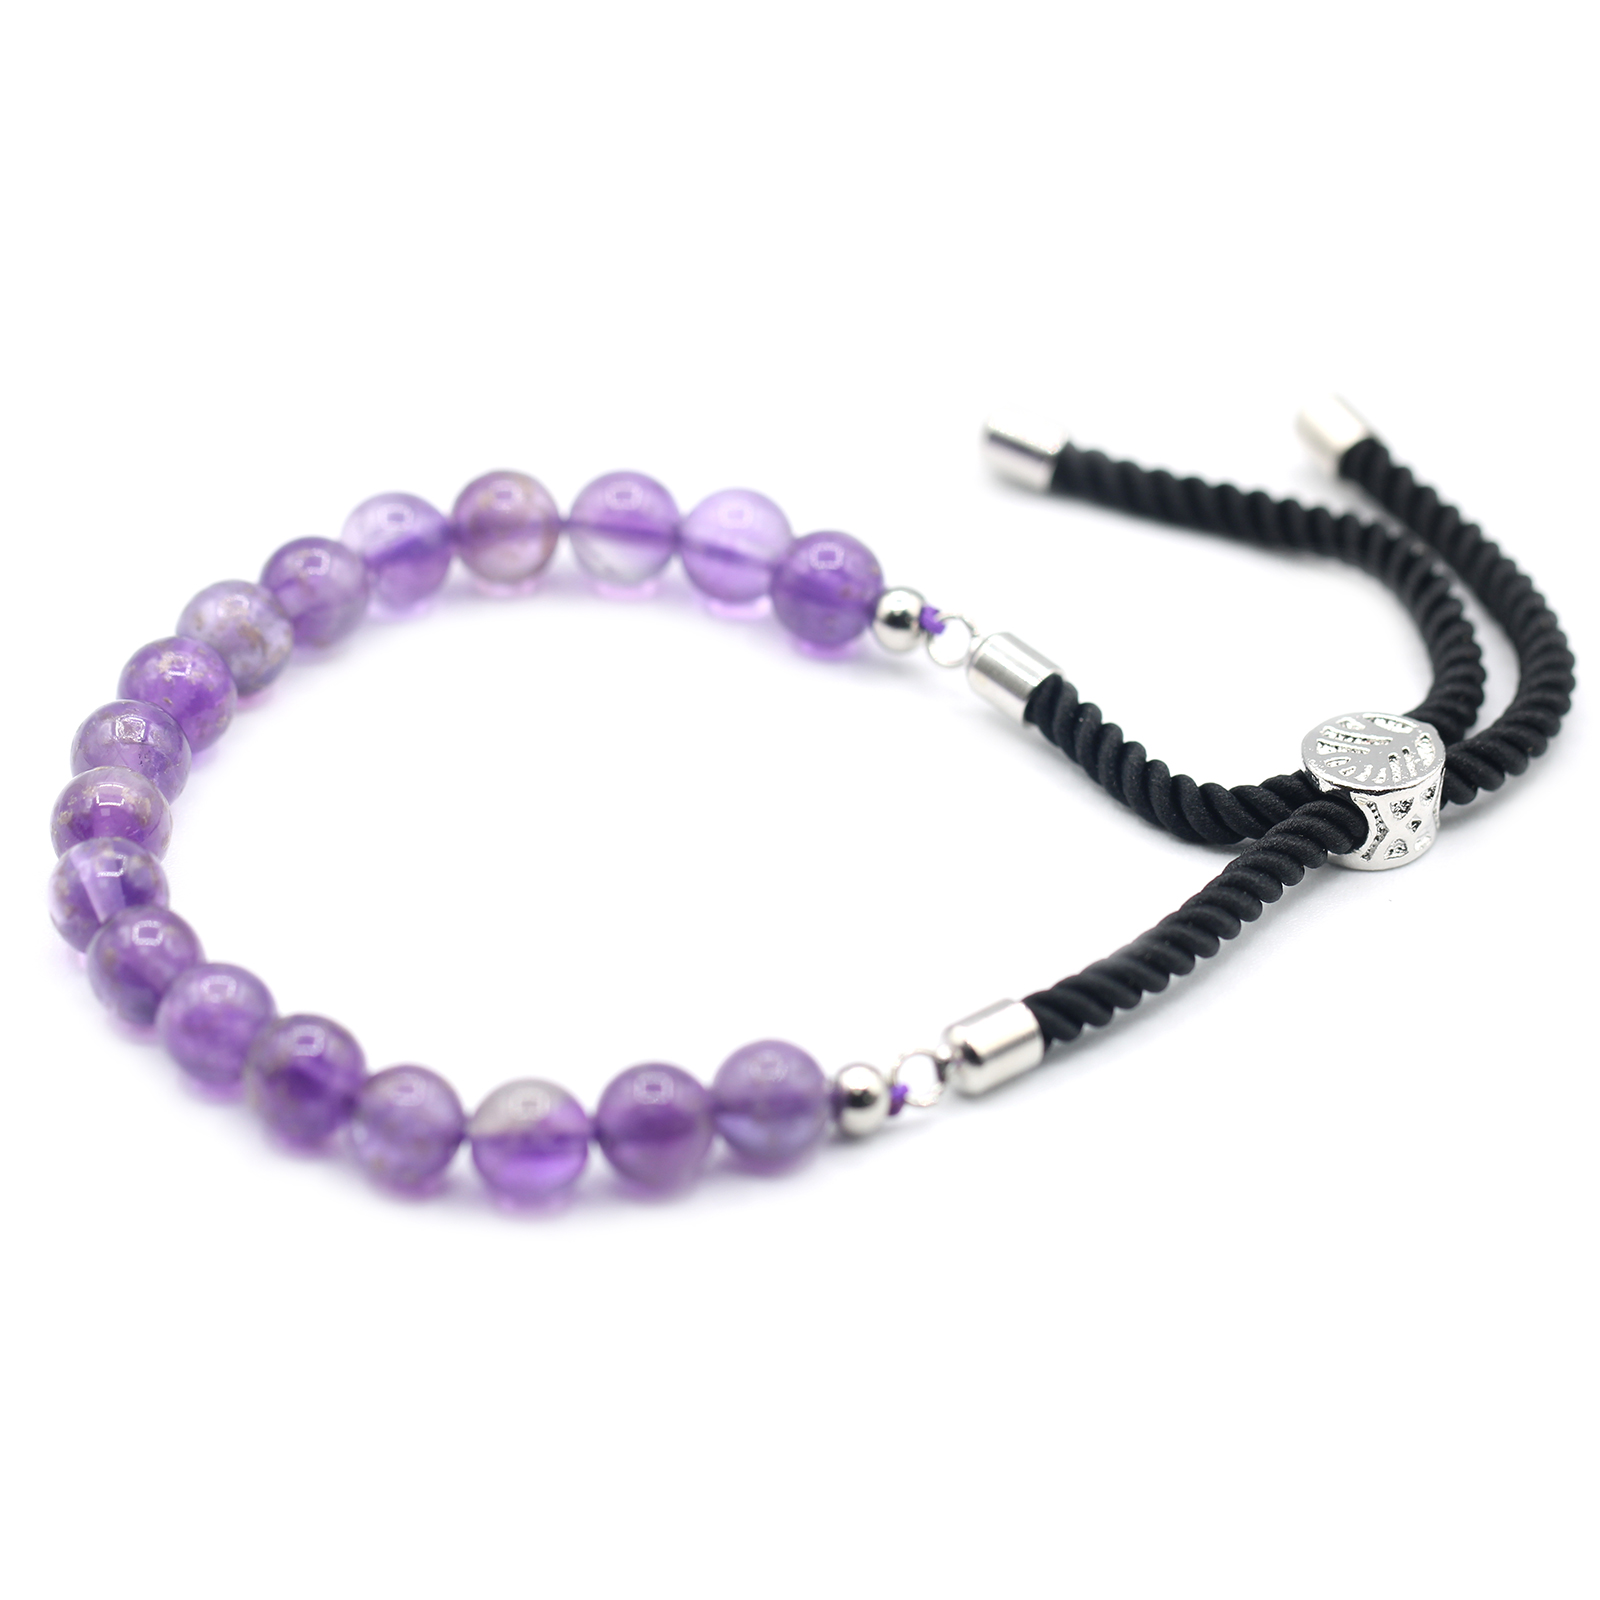 925 Silver Plated Gemstone Black String Bracelet Amethyst